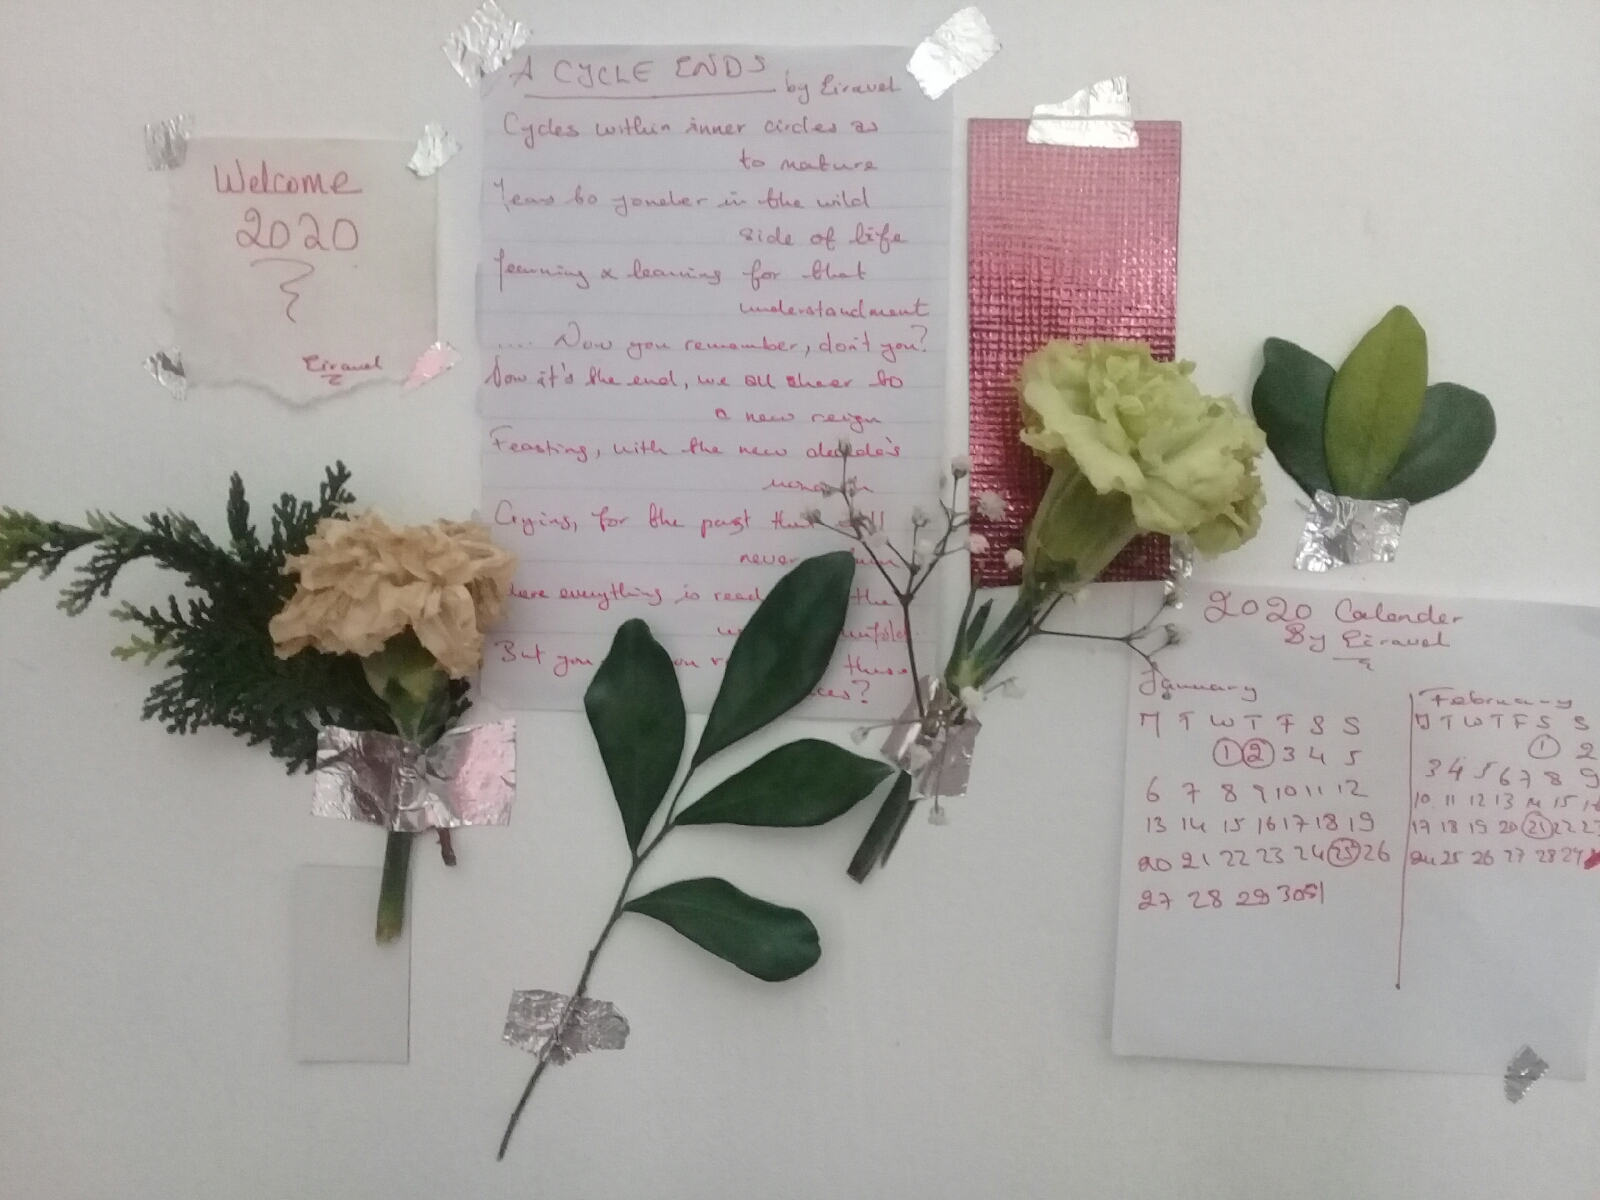 2020 Wall art with handwritten poem, calendar, and flowers